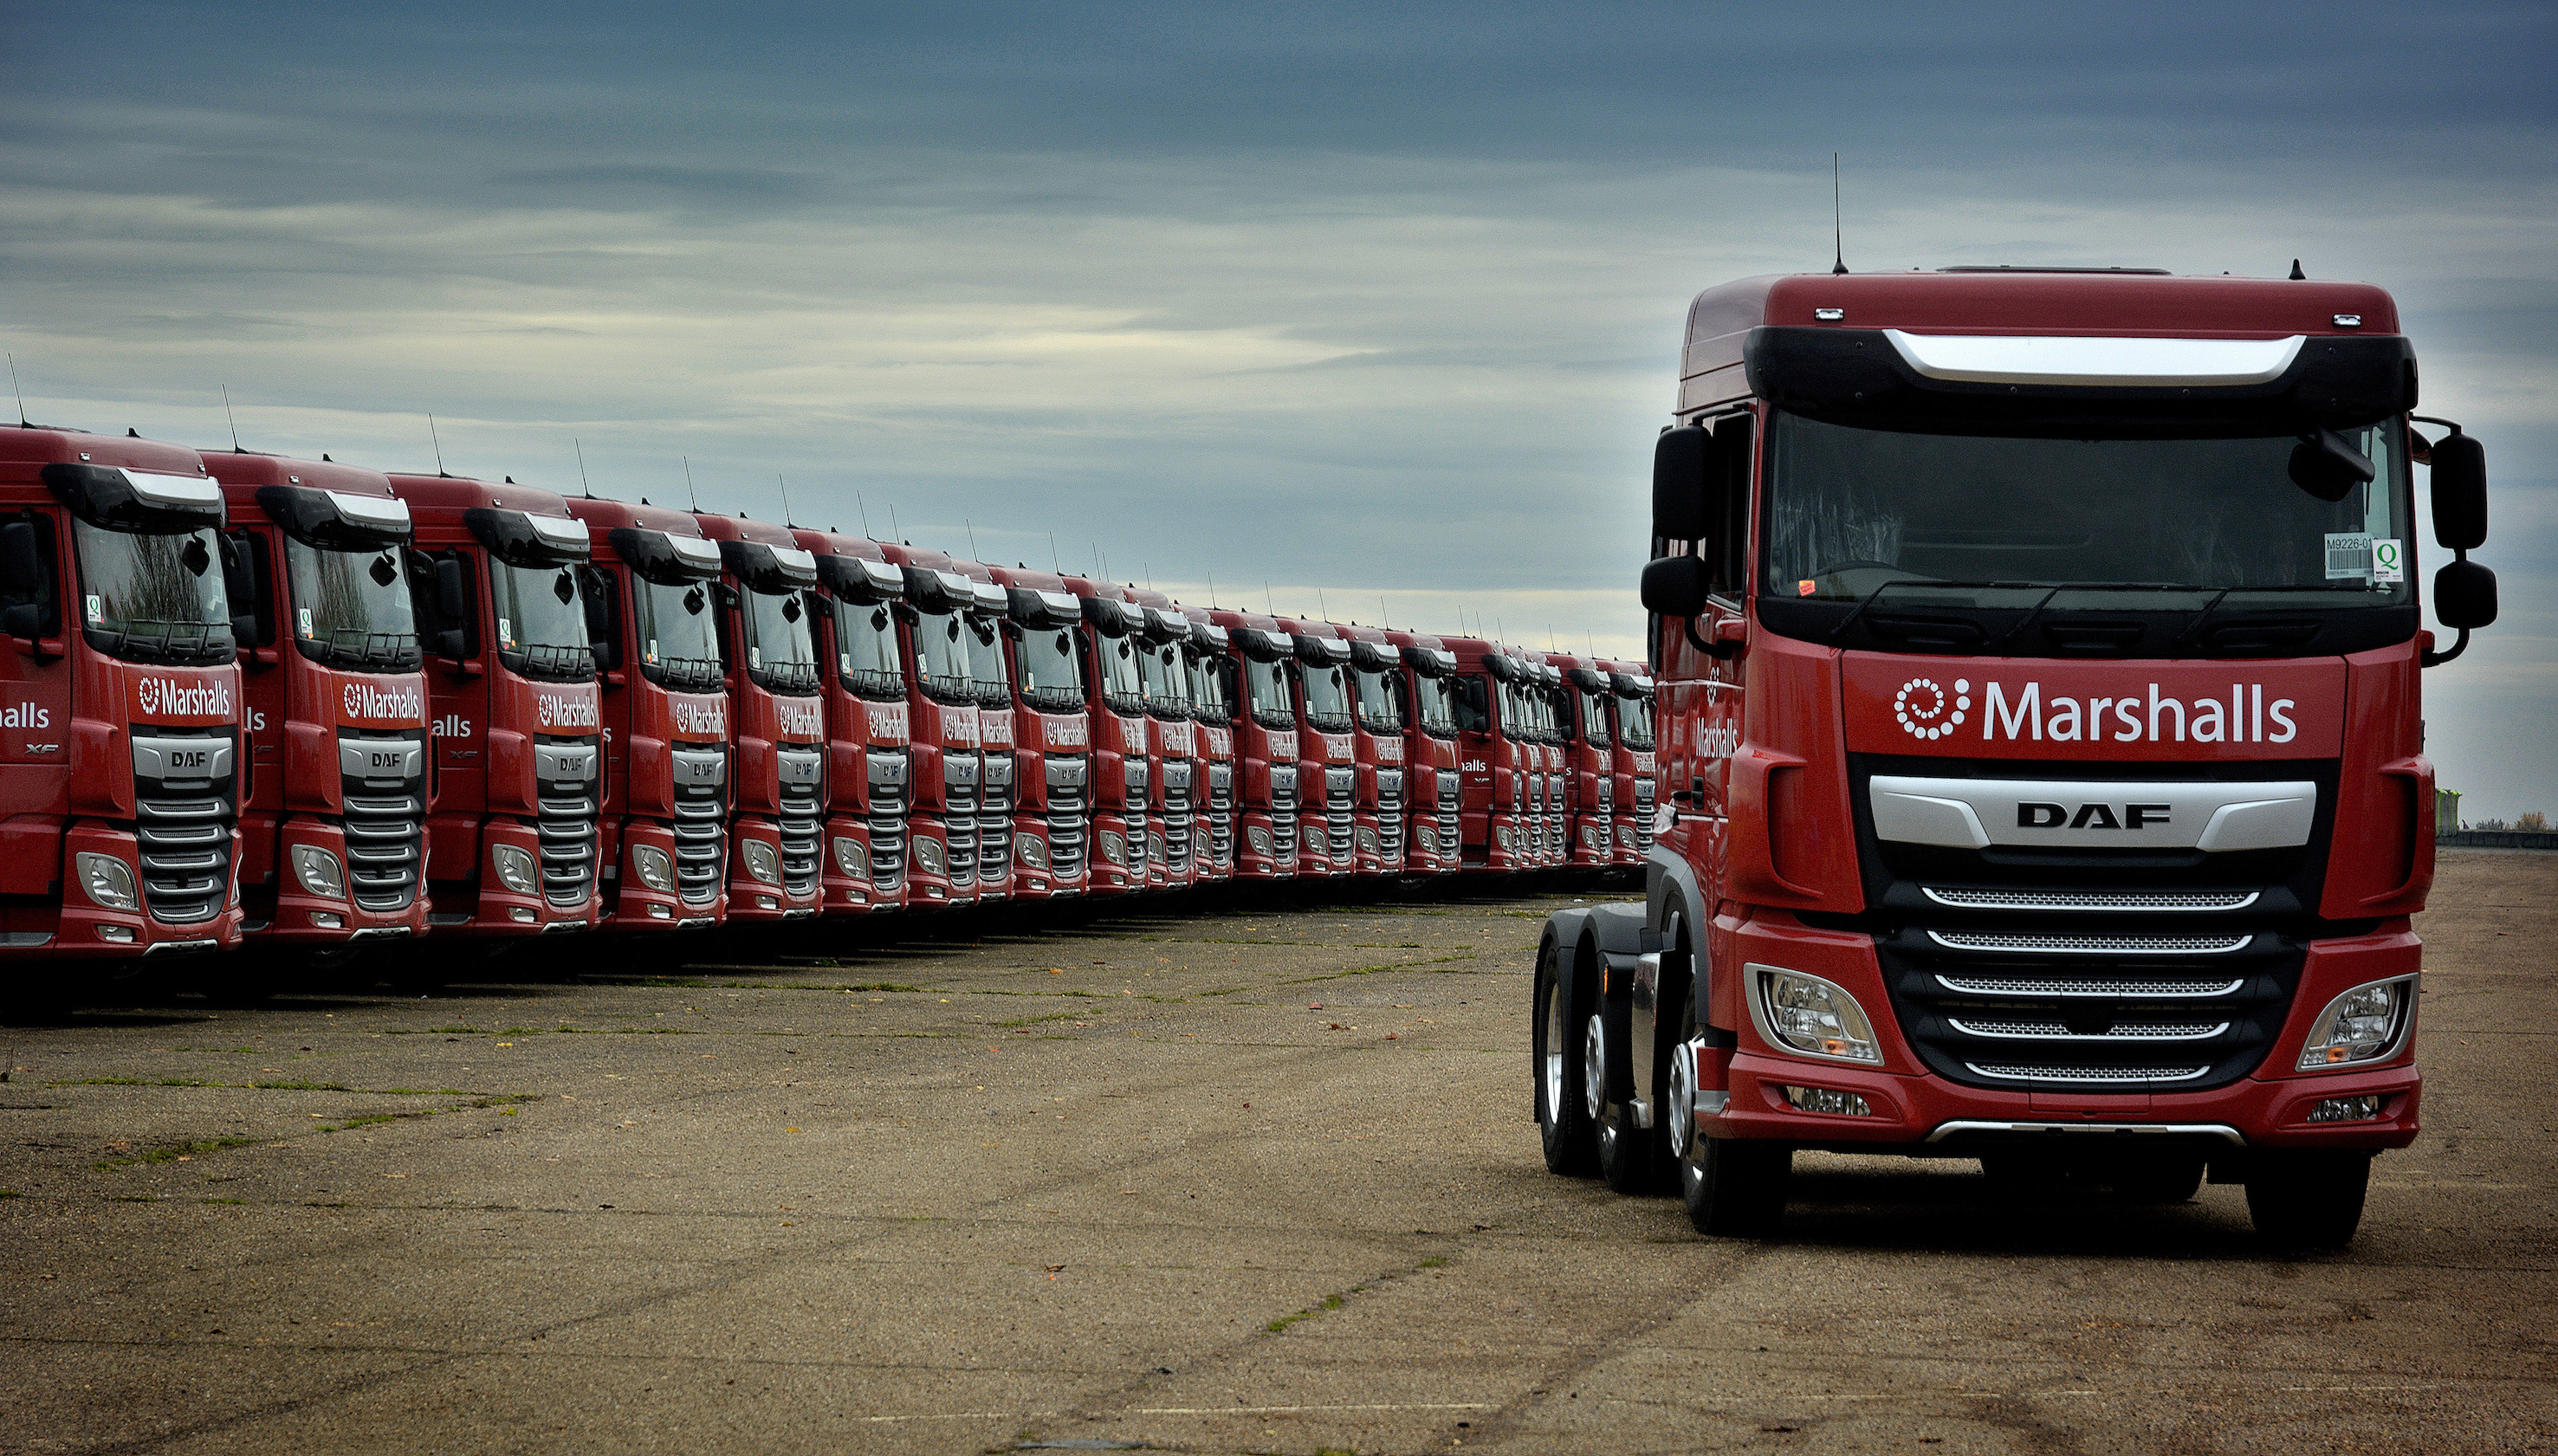 """We've worked really hard to understand the demands of Marshalls' transport operation, which is complex and involves a significant number, and wide range, of vehicle types. I believe Ryder's size and strength as a business give us a real advantage in supporting a transport operation as large and diverse as Marshalls."""